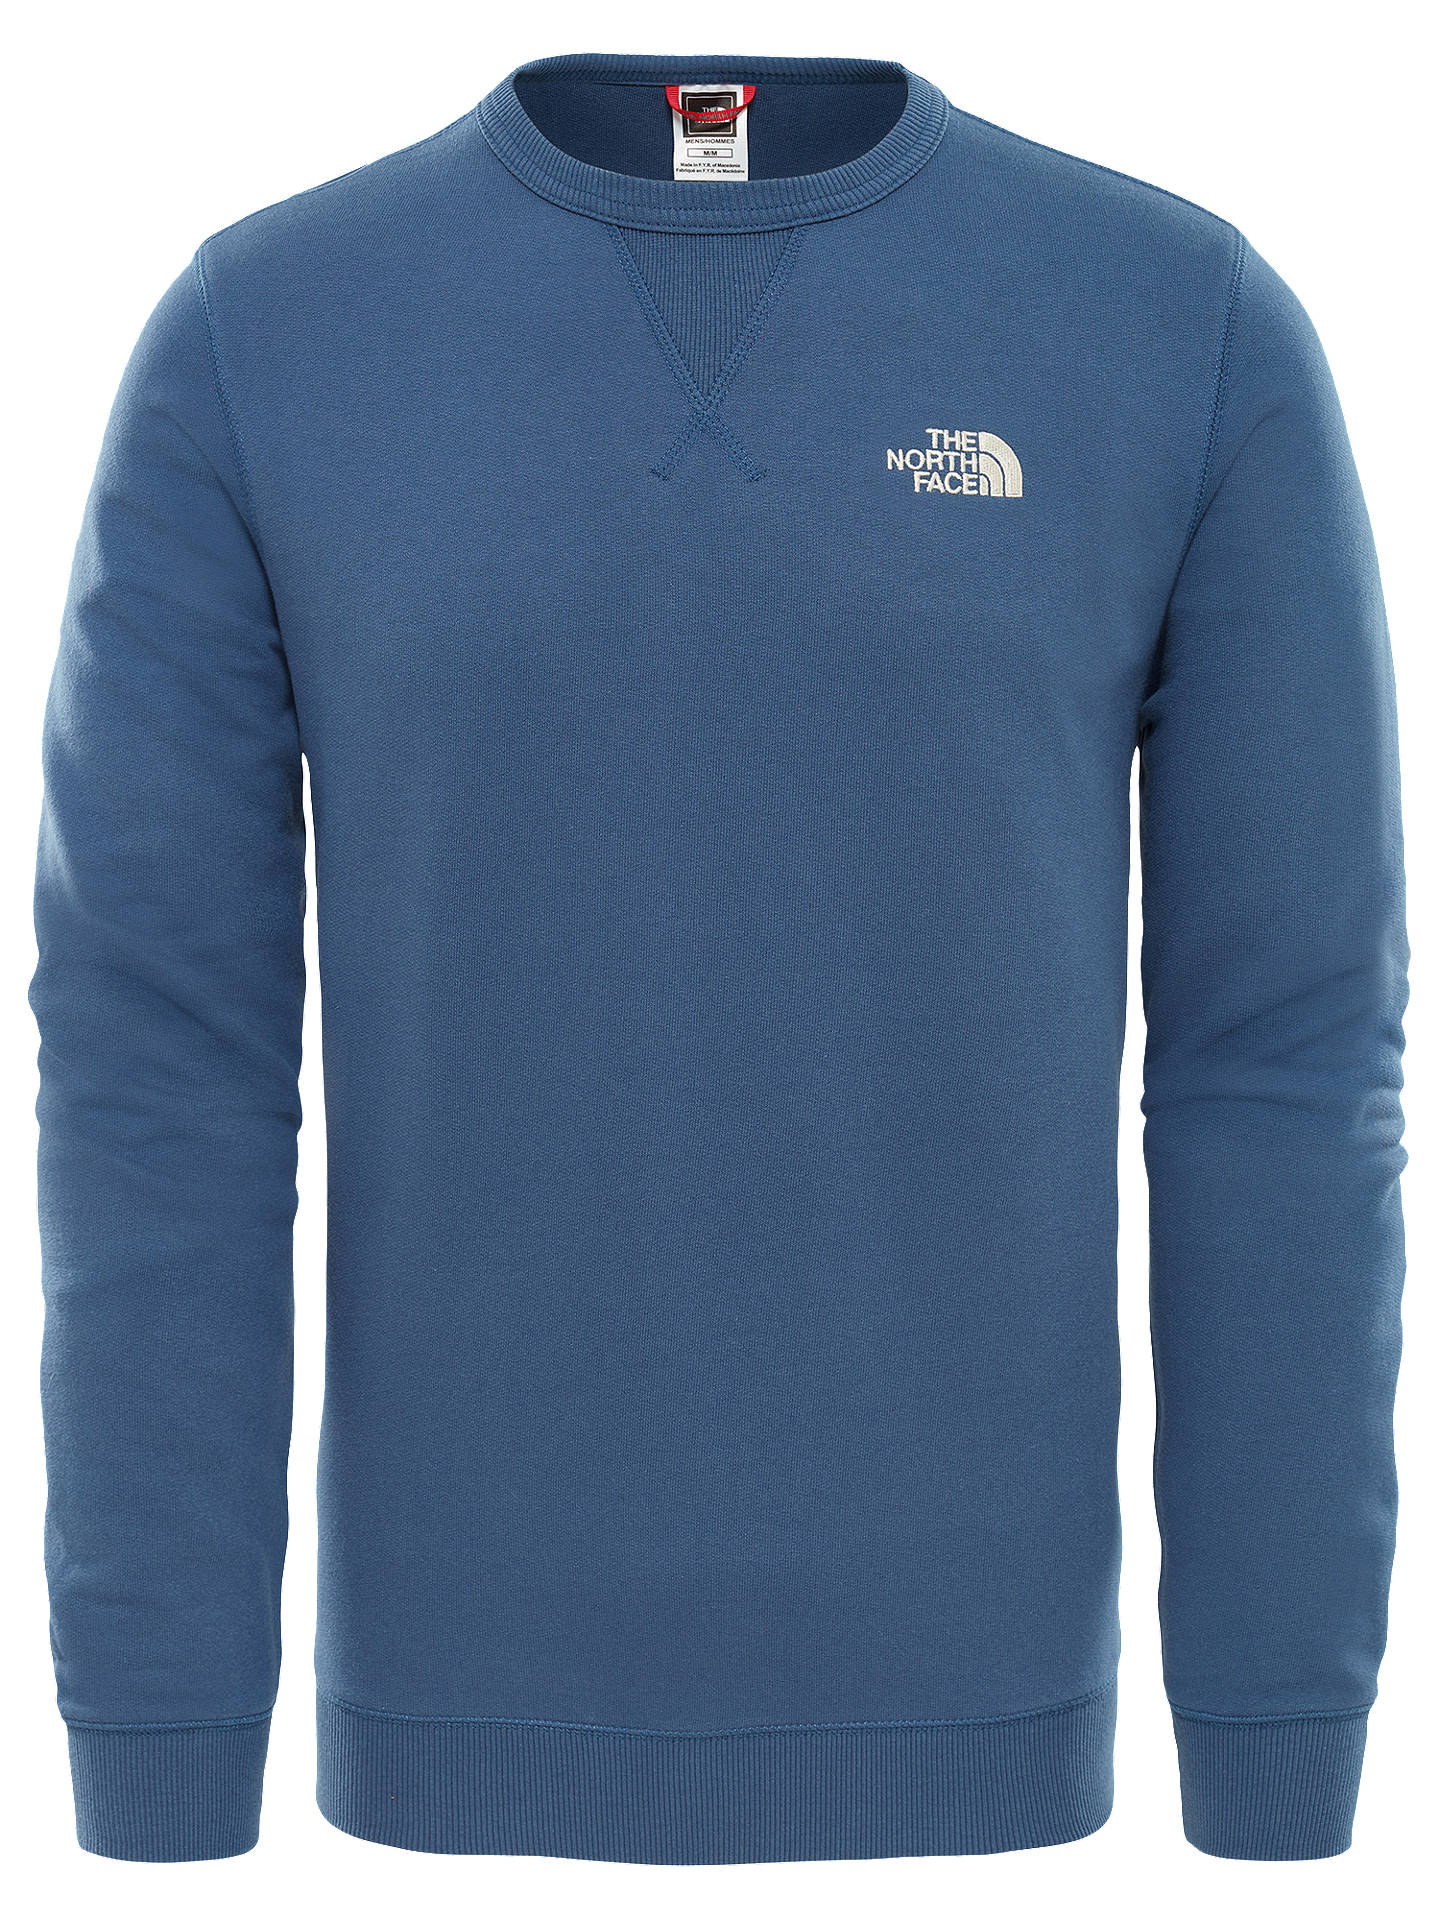 Buy The North Face Straight Fleece Pullover, Shady Blue/Vintage White, L Online at johnlewis.com